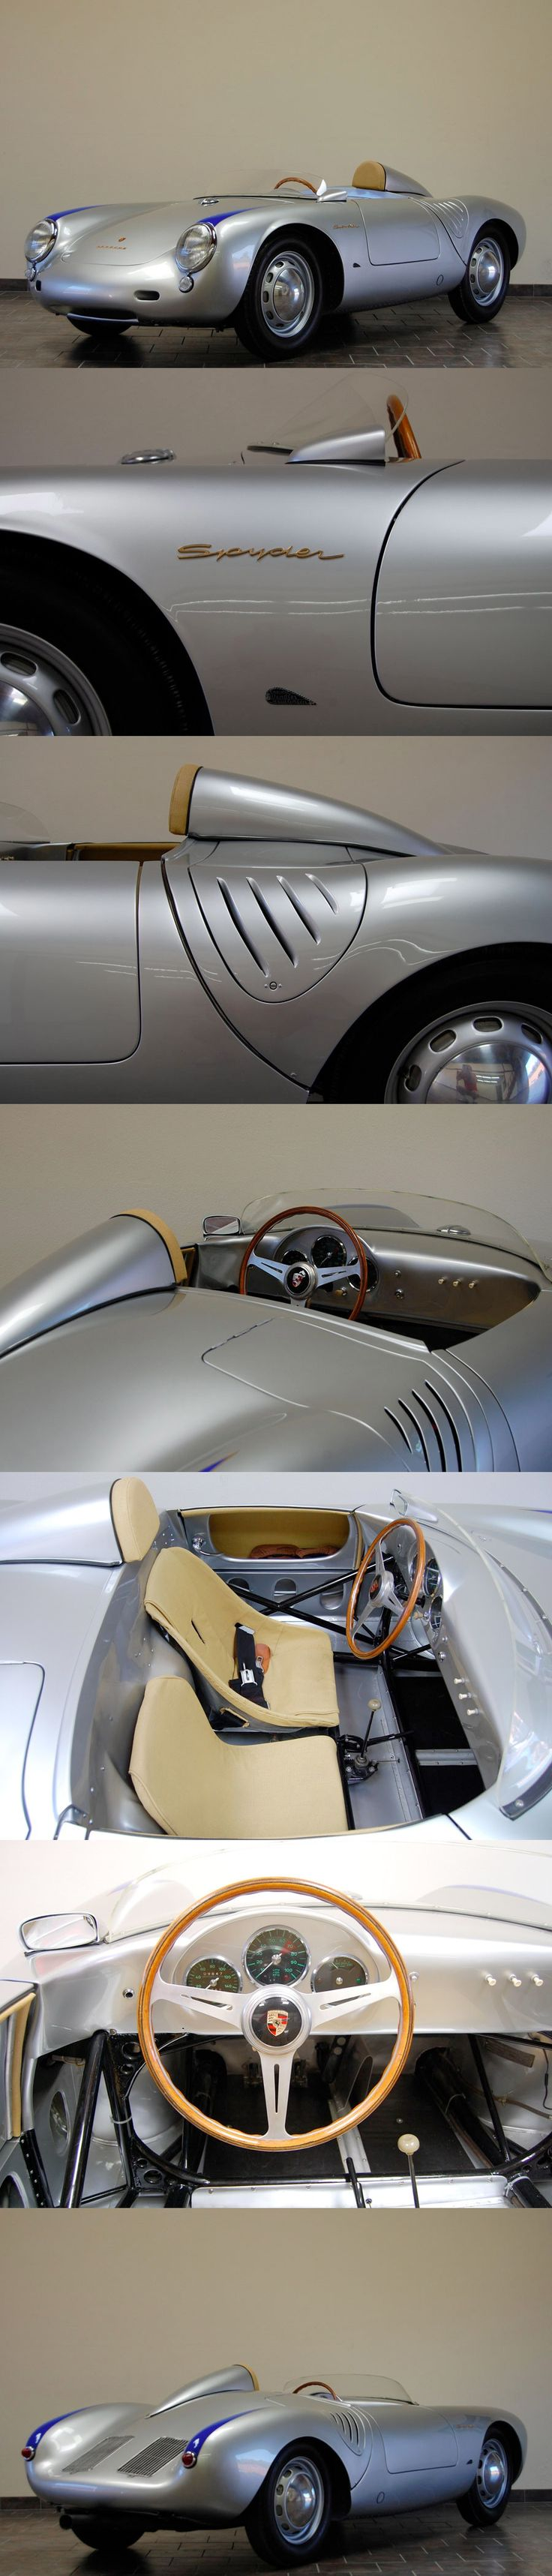 1957 Porsche RS 550A Spyder yes! Sleek like a bullet. Top faves | Whether you'...